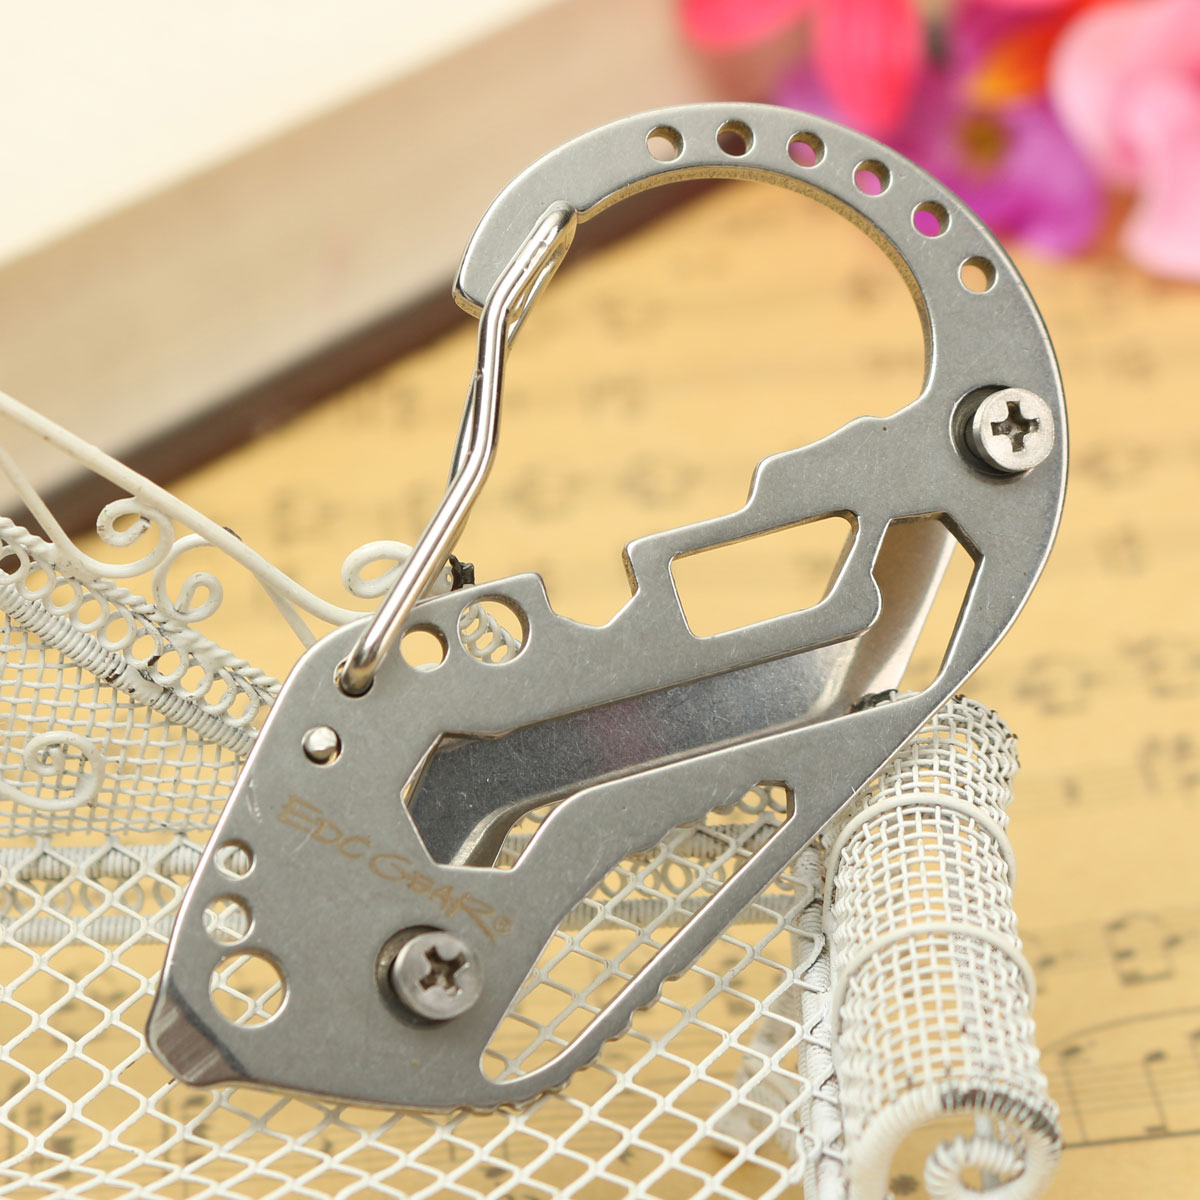 Multifunction Stainless Steel Portable Key Chain Holder Carabiner Wrench EDC Outdoor Tool